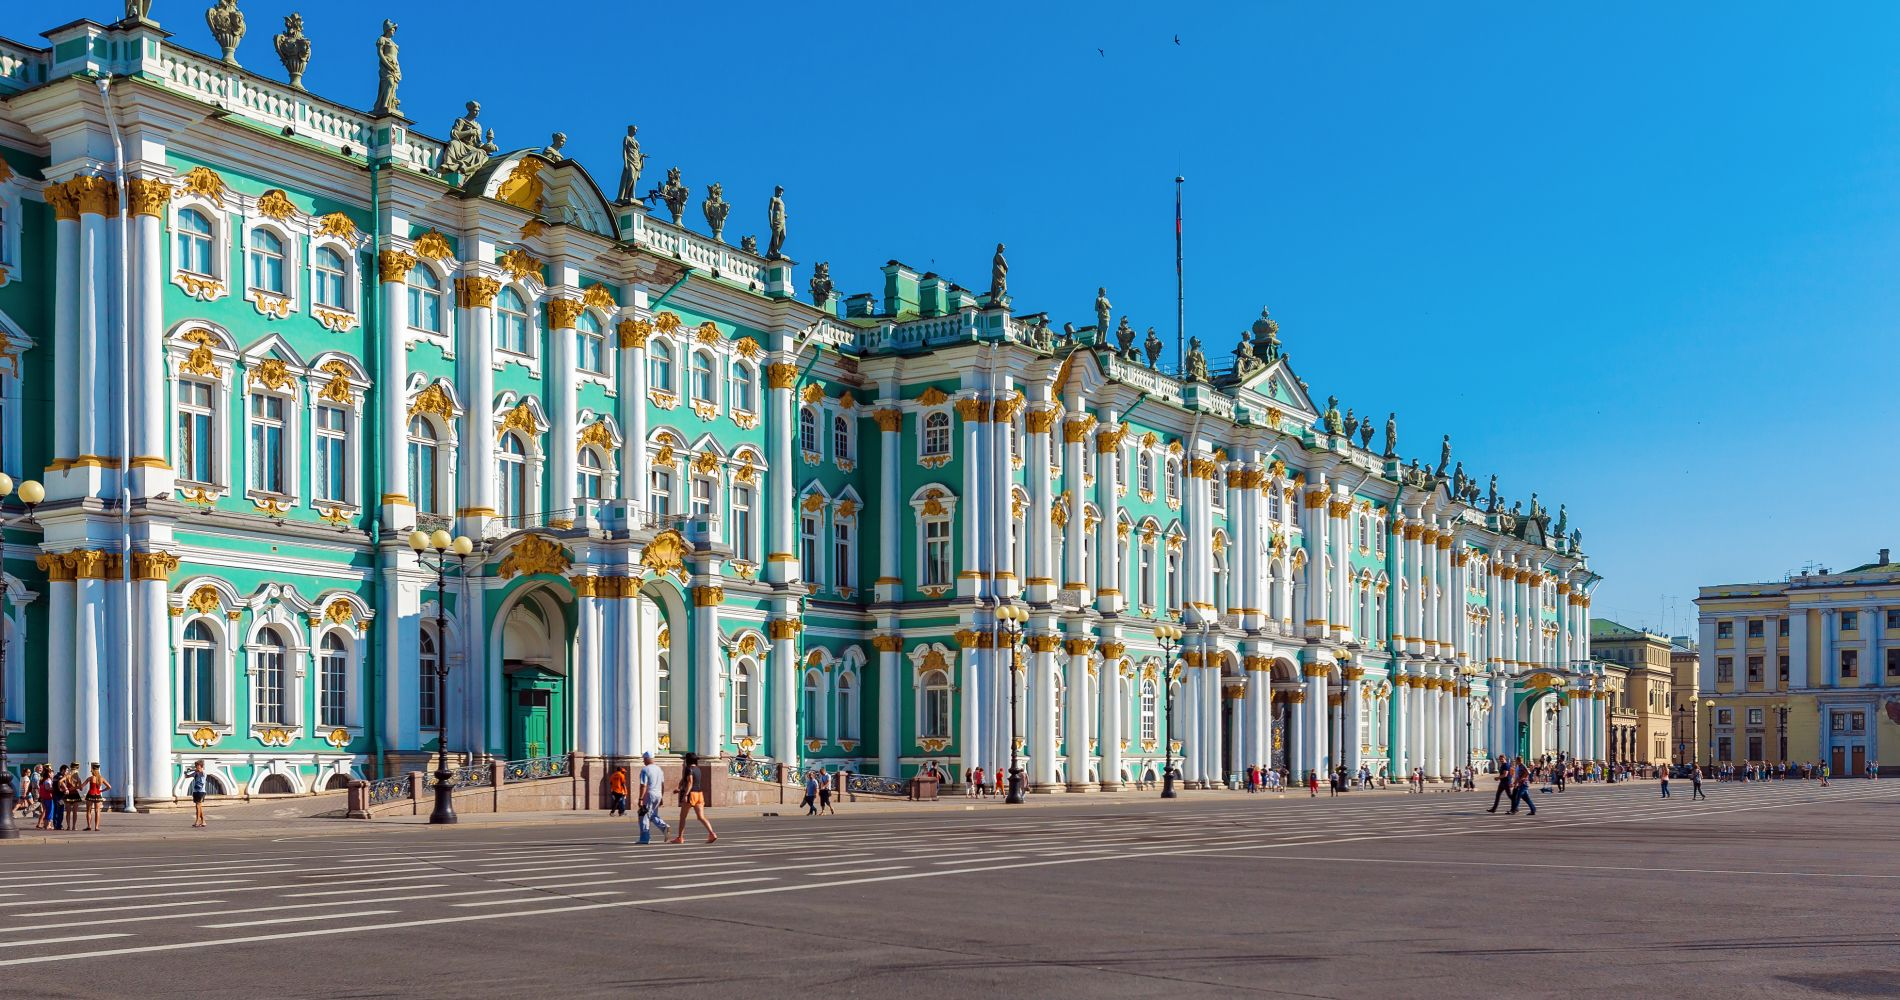 Hermitage Museum Walking Tour in St. Petersburg